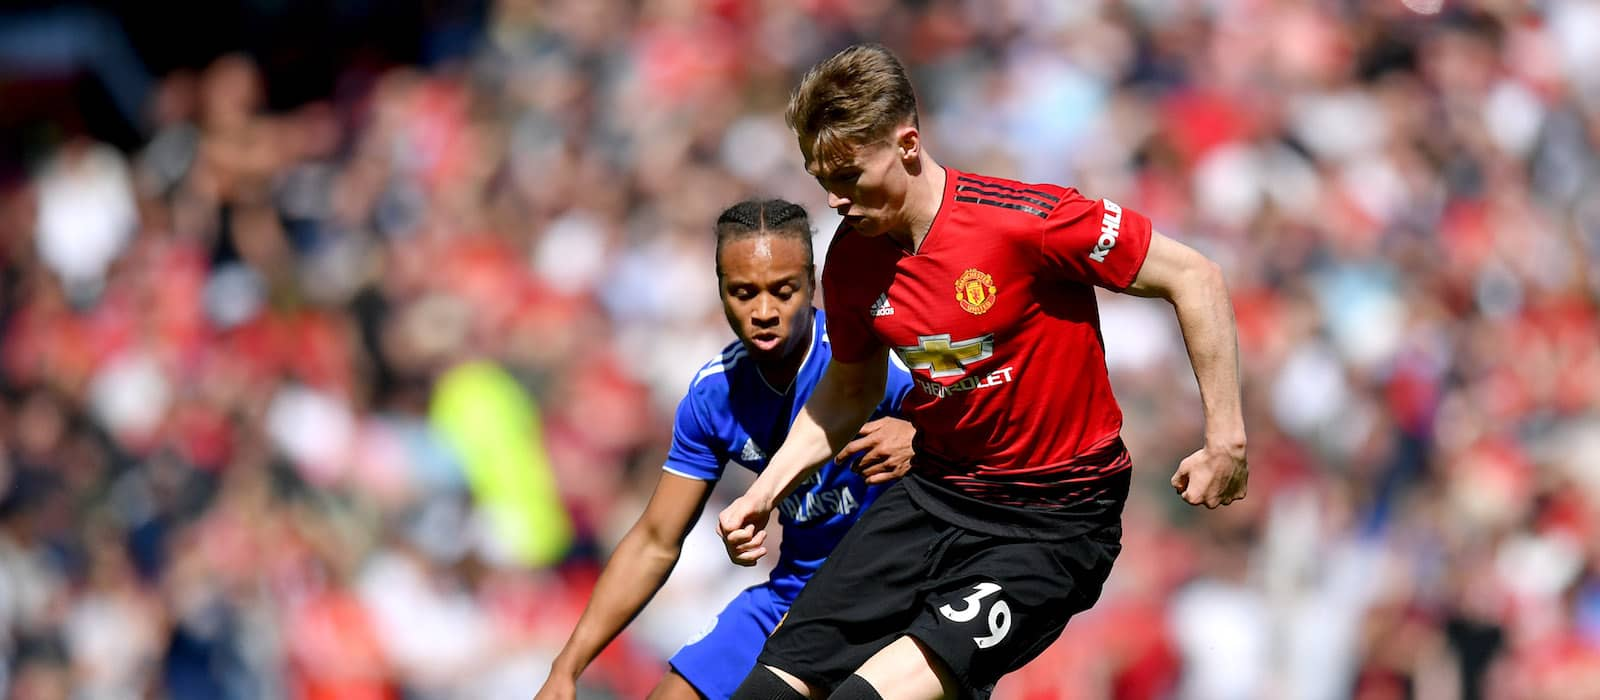 Player ratings: Manchester United 0-2 Cardiff City